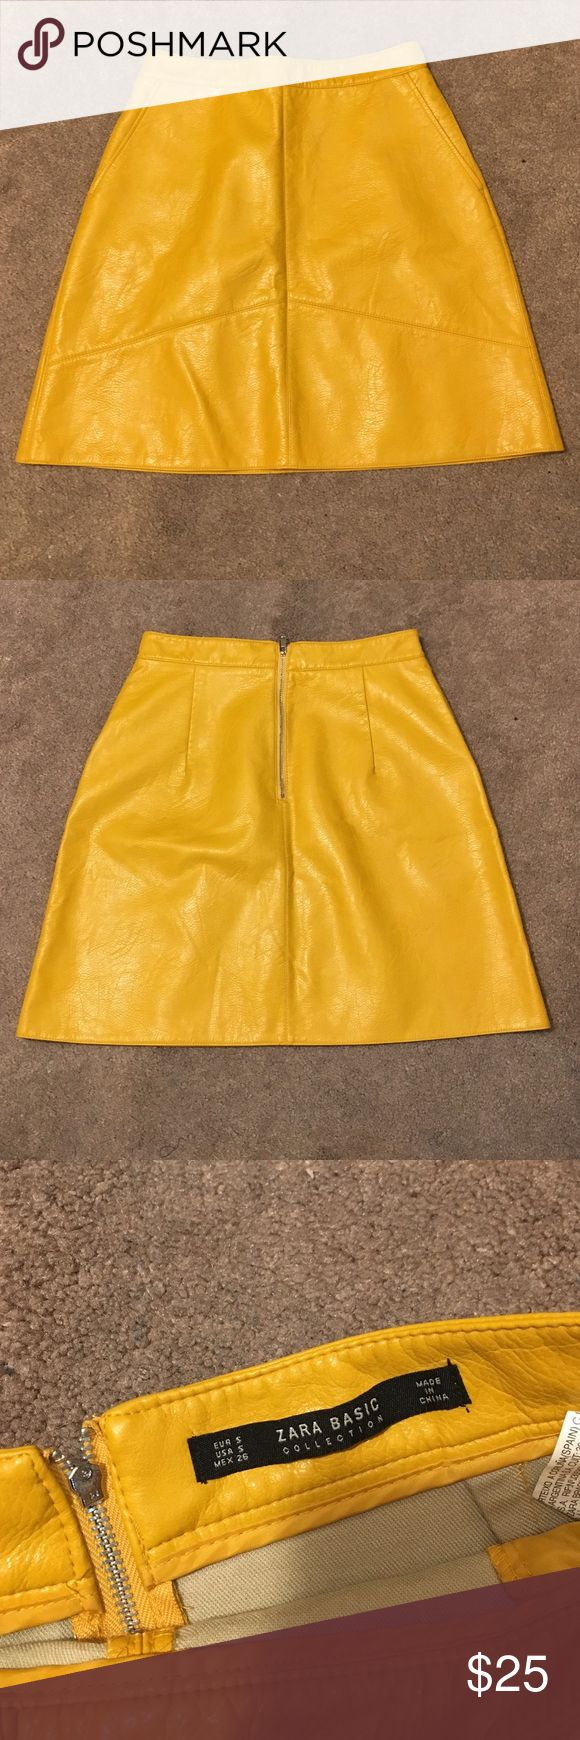 "Zara Mustard Yellow Faux Leather Skirt Faux leather mustard yellow skirt with two side pockets and back zip. Size small. Waist 28"". Length 18"". In great condition. Zara Skirts"